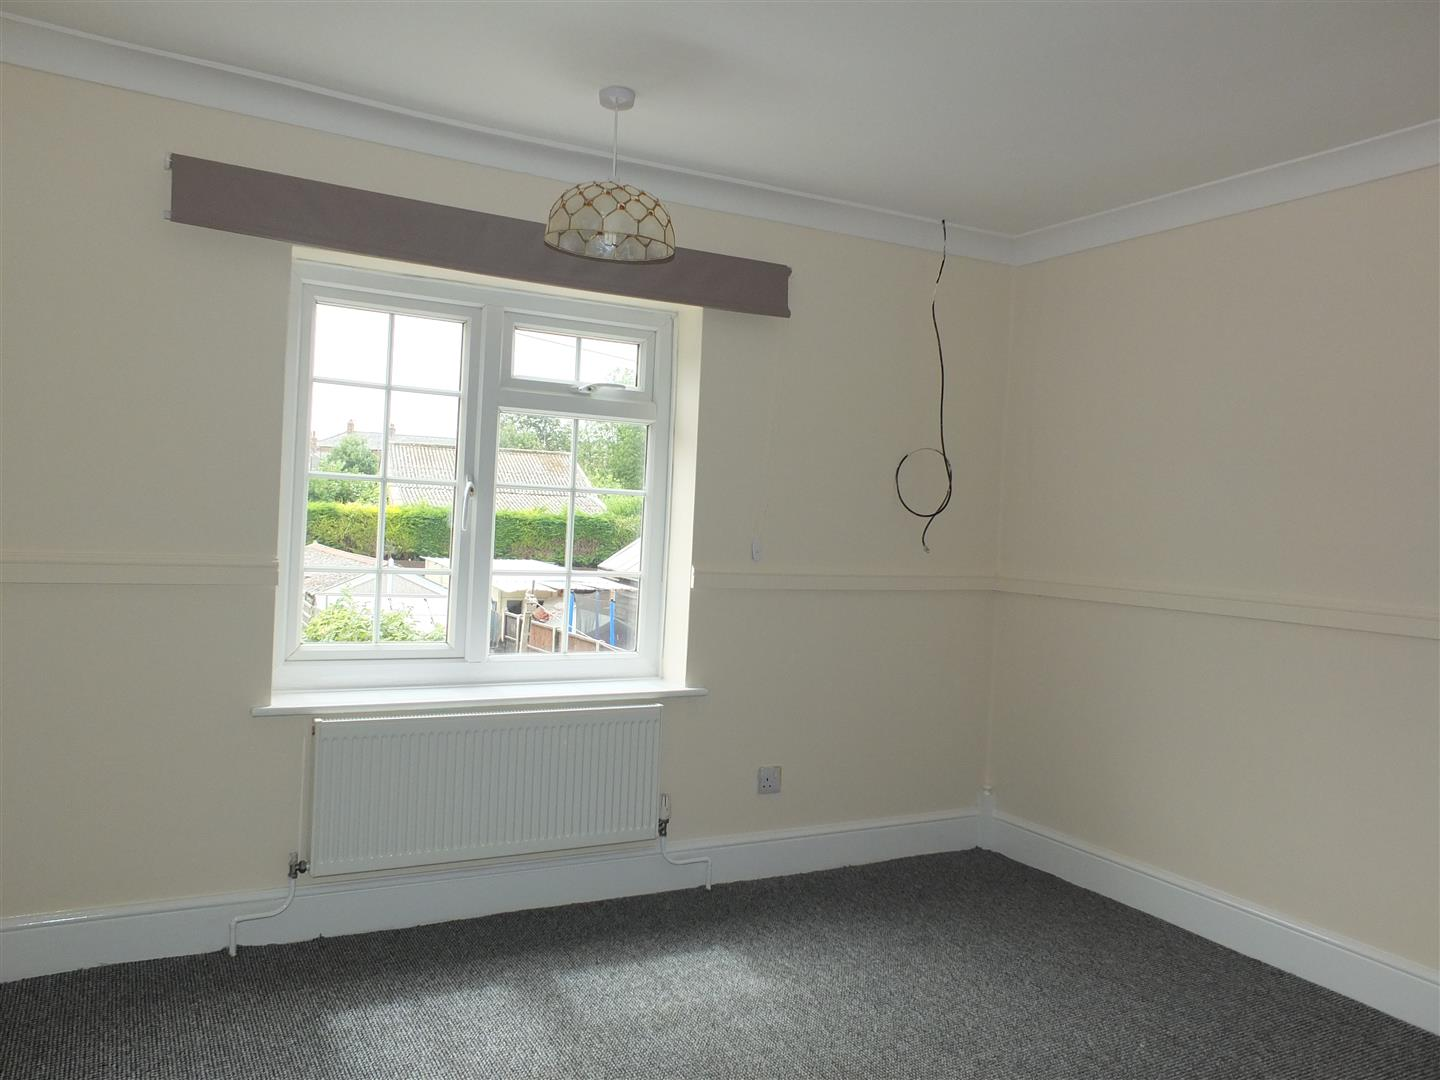 2 bed house to rent in Long Sutton Spalding, PE12 9DH 8